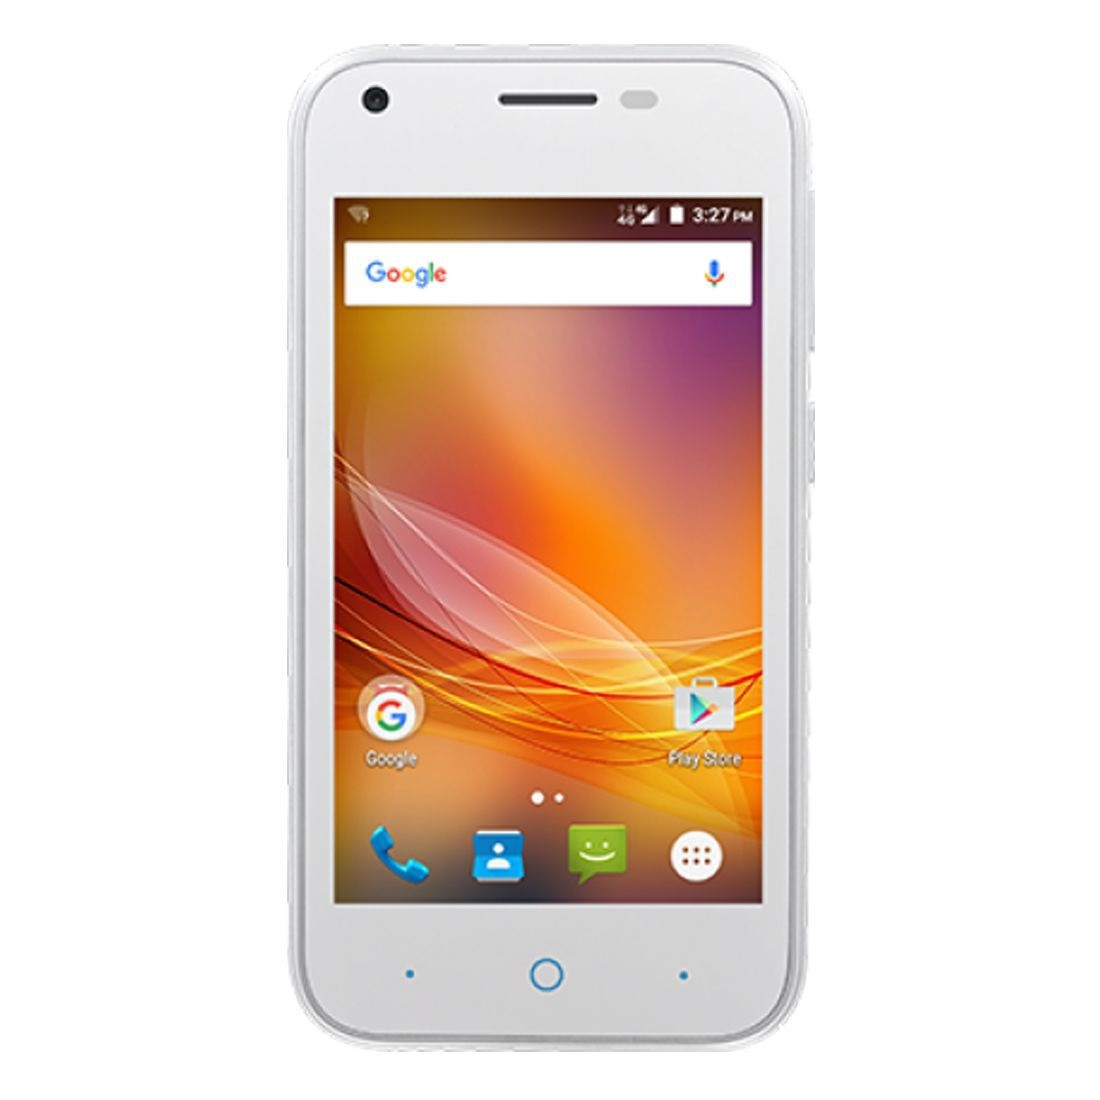 ZTE Blade Shout A110 Mobile Phone